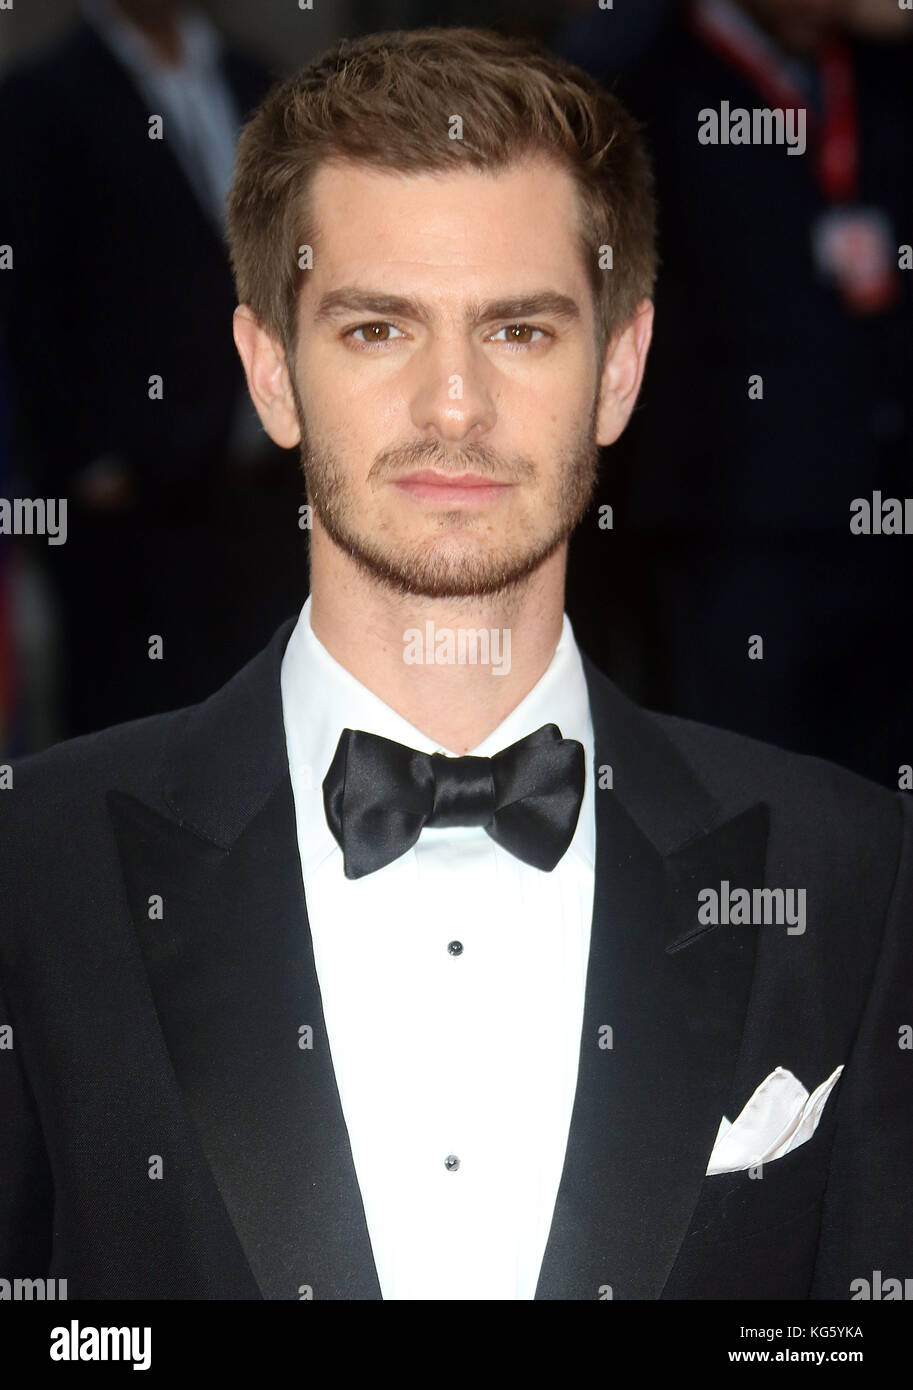 Oct 04, 2017 - Andrew Garfield attending 'Breathe' European Premiere, Odeon Leicester Square in London, - Stock Image